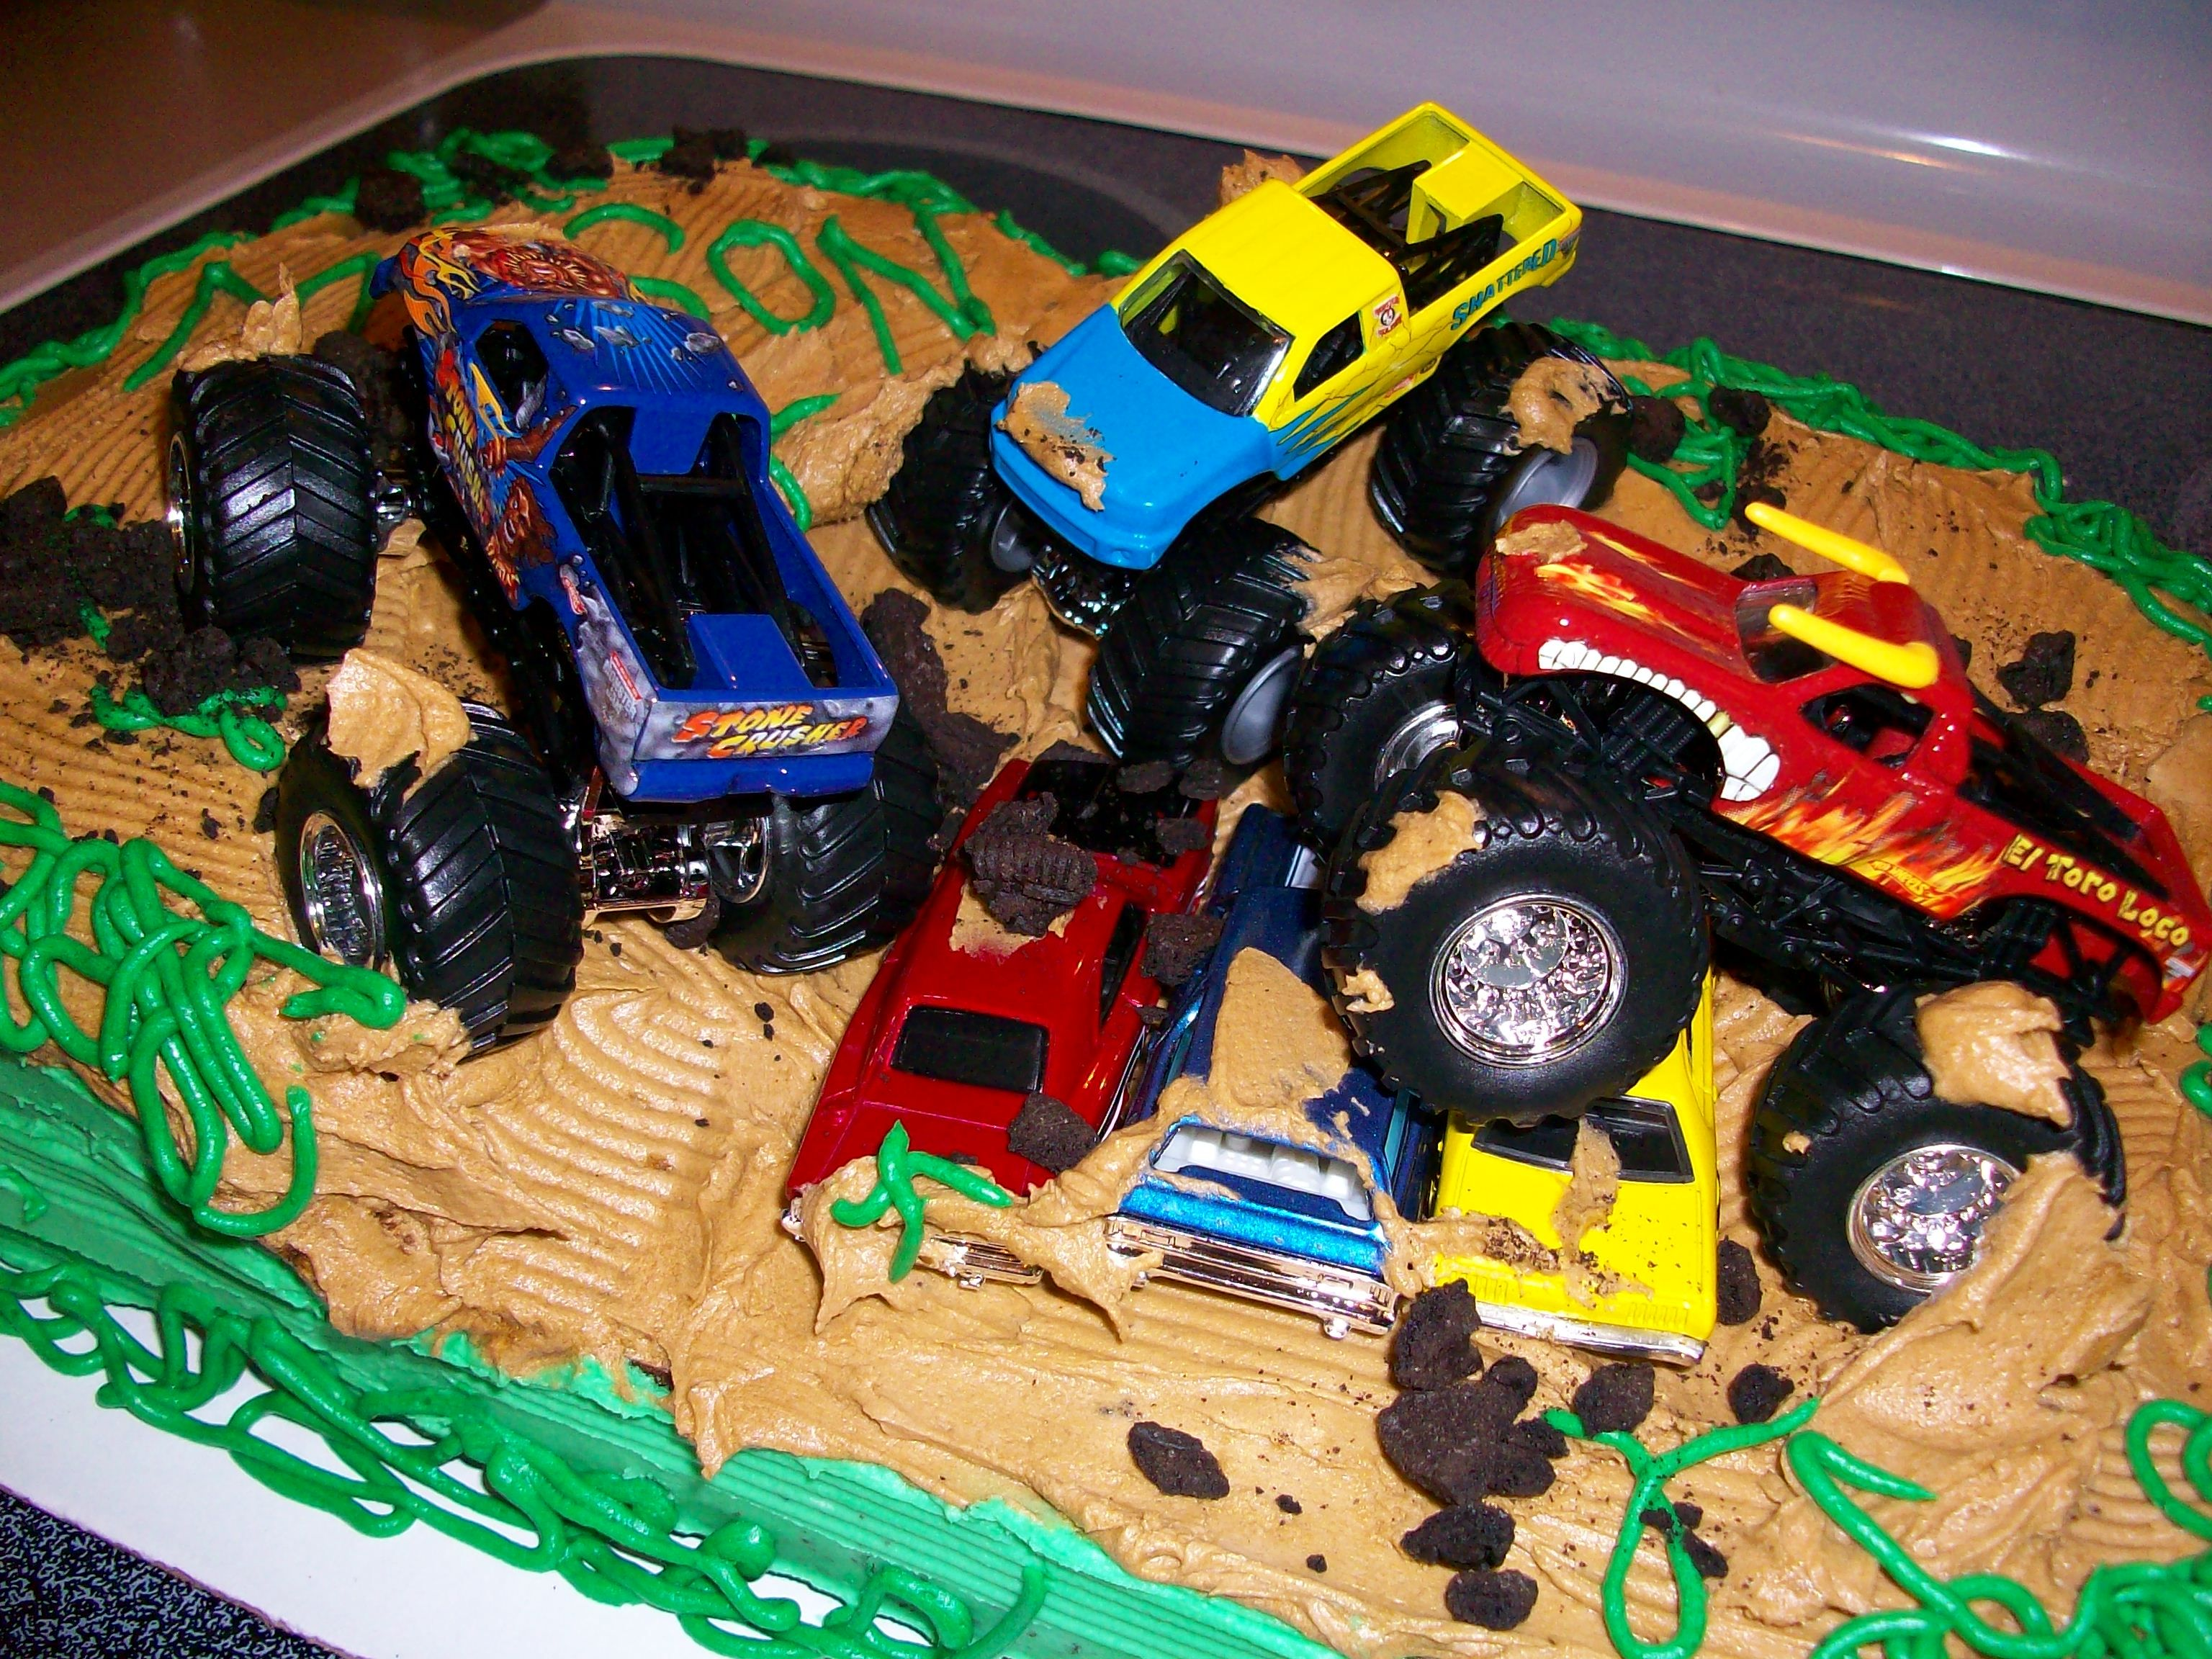 Boy Birthday Cake Monster Truck Image Inspiration of Cake and